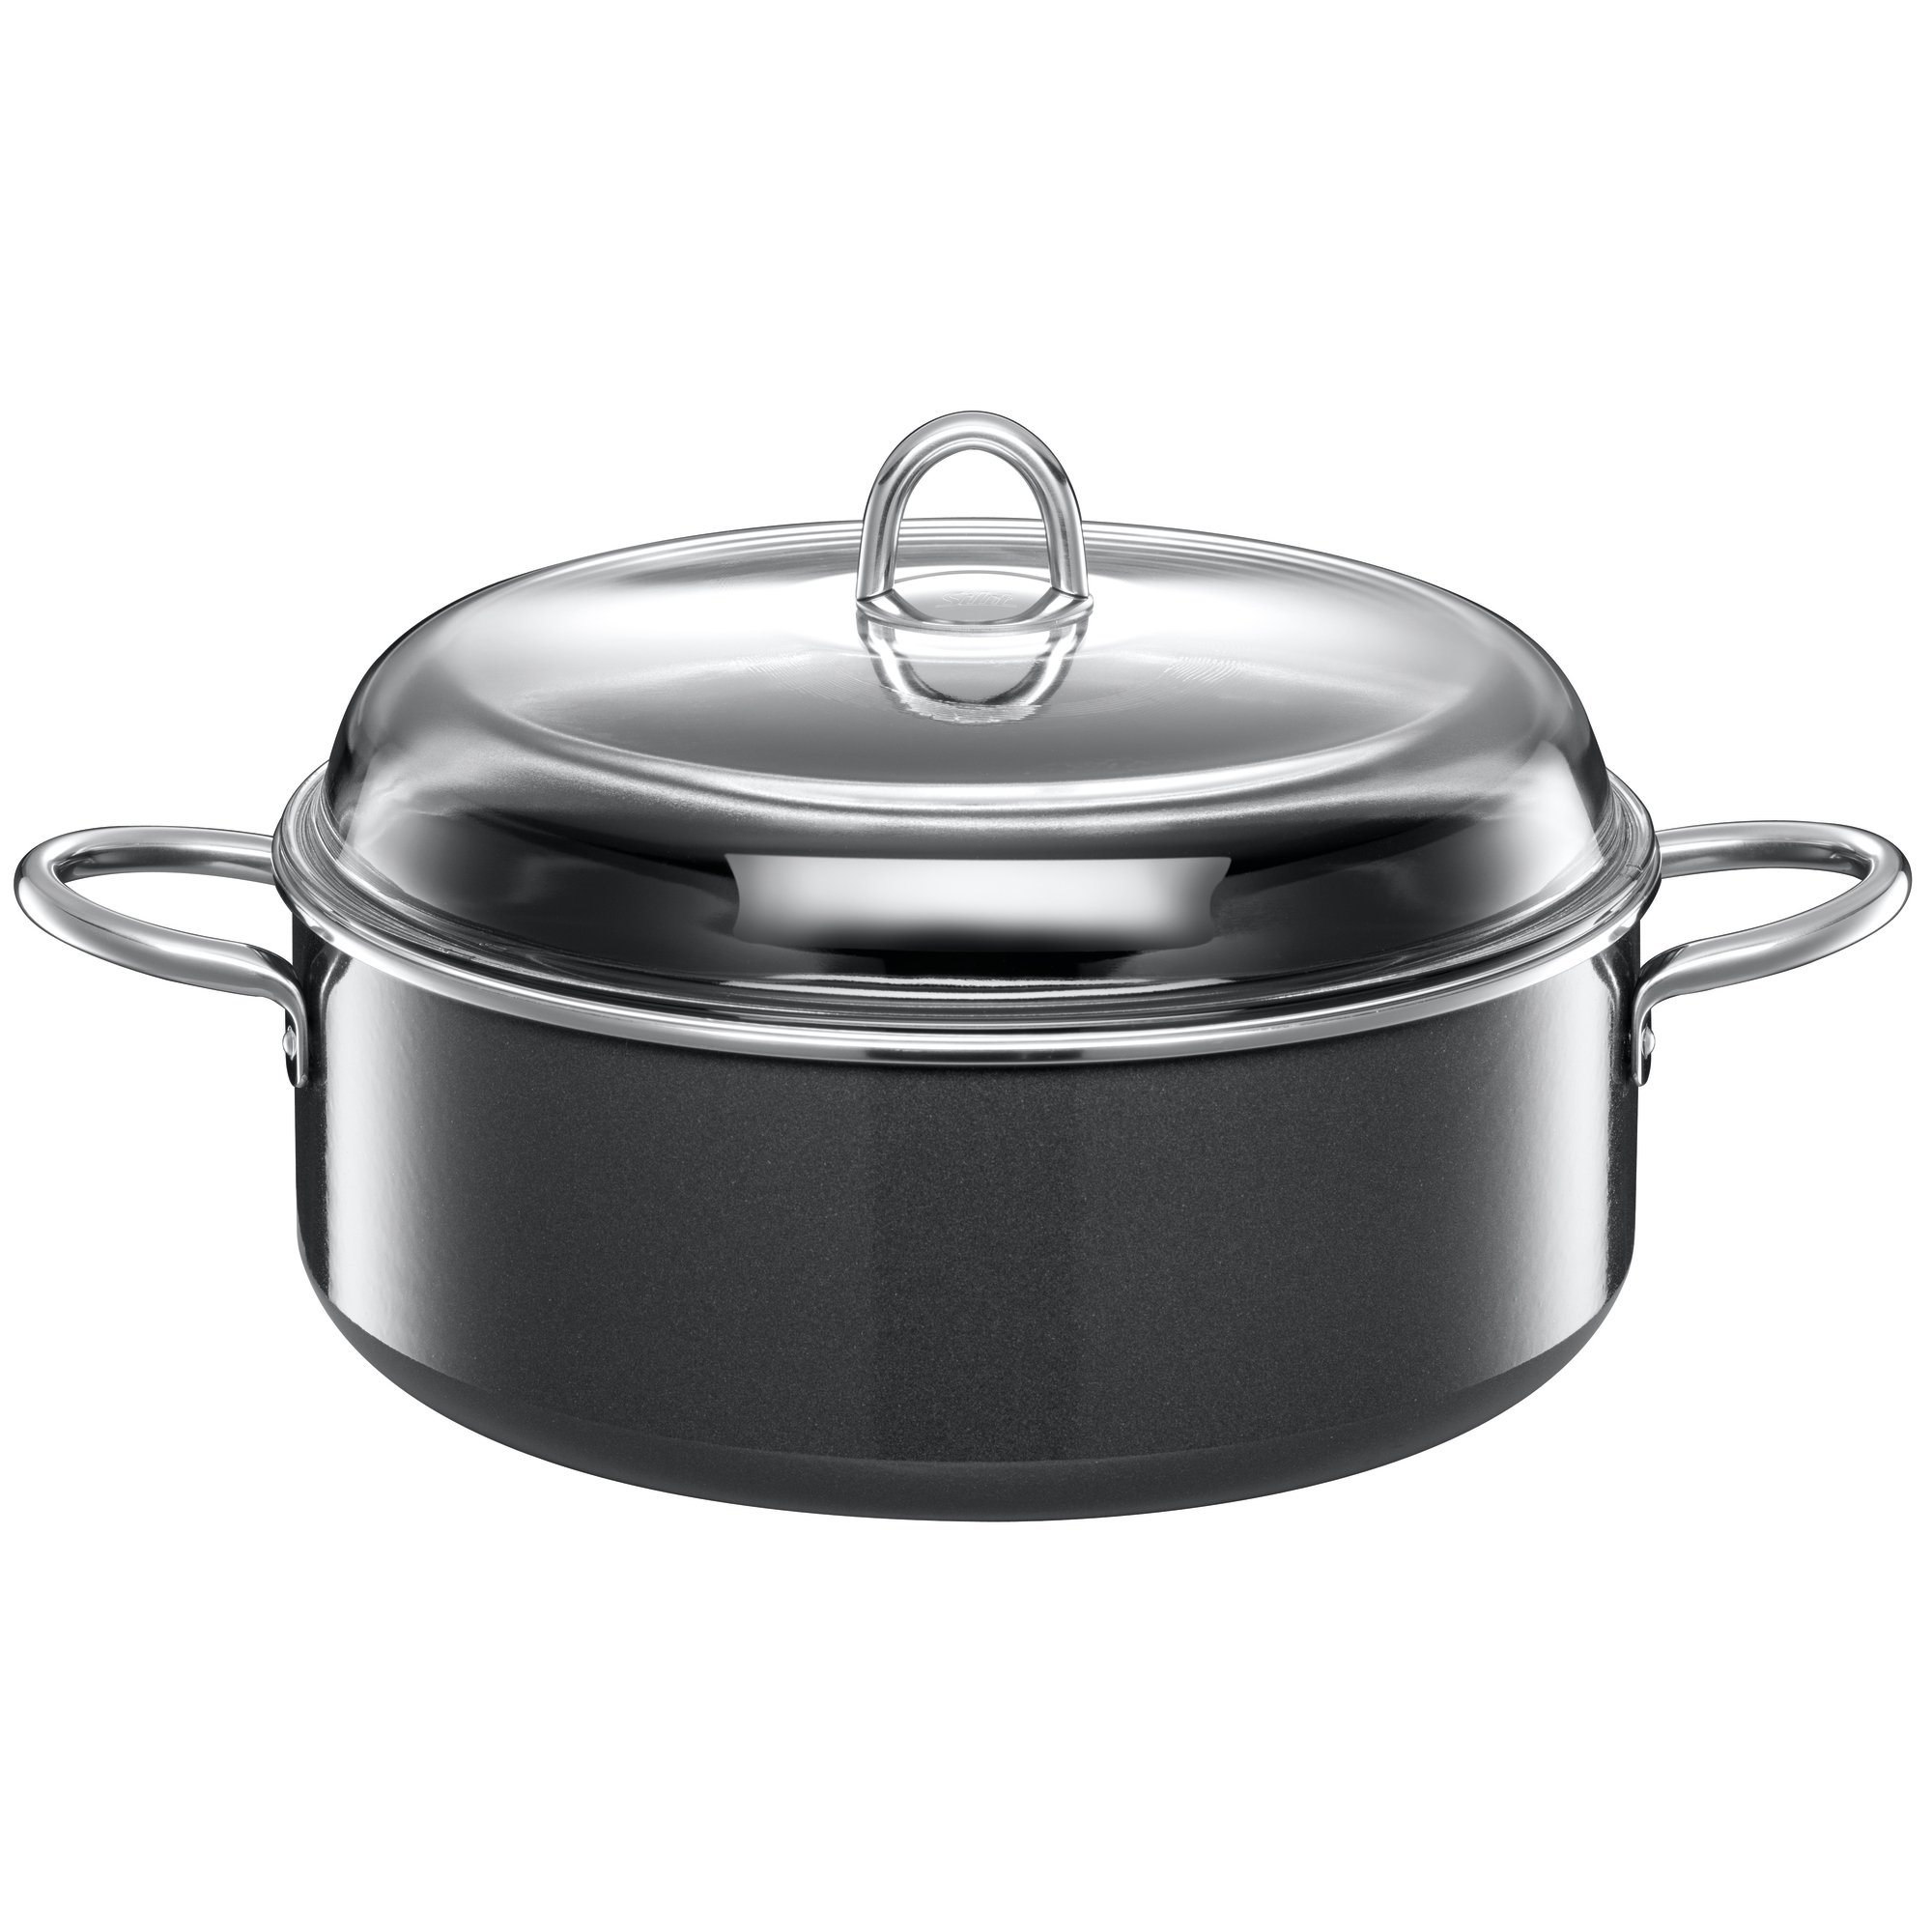 Silit Passion 6 Quart Stewpot with Lid